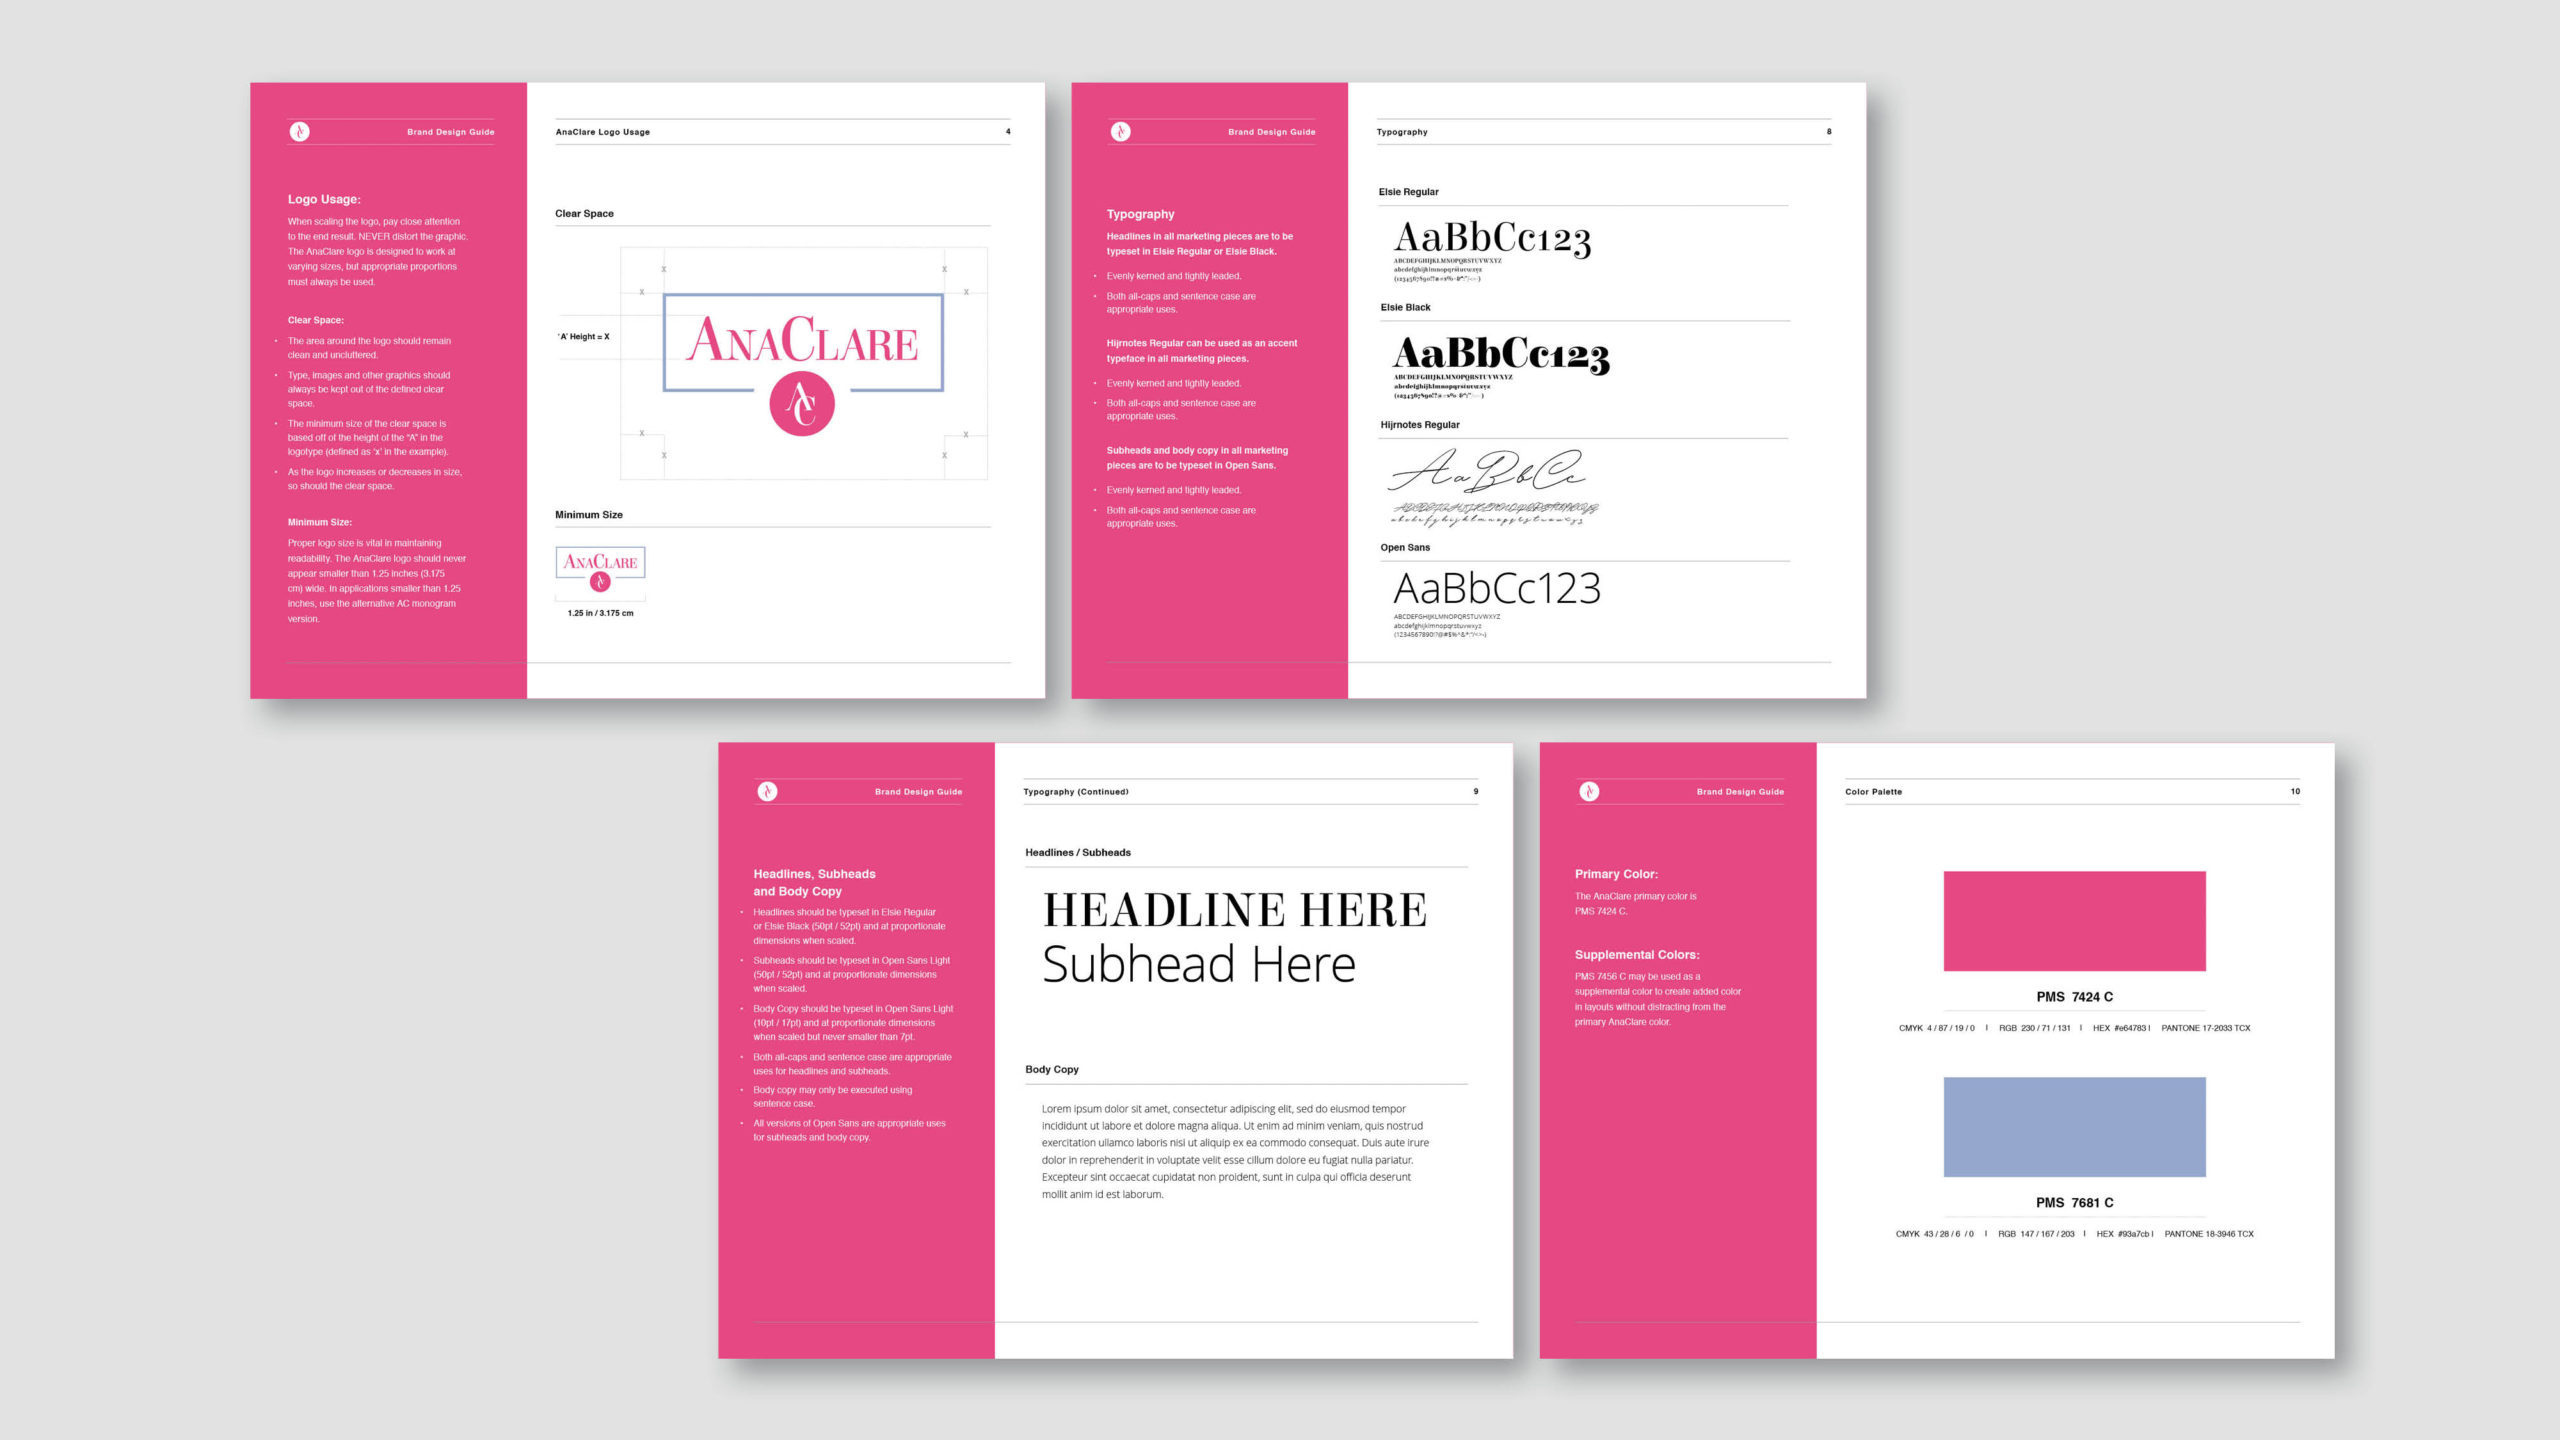 brand guidelines - AnaClare and AnaClare Active - Dead on Design